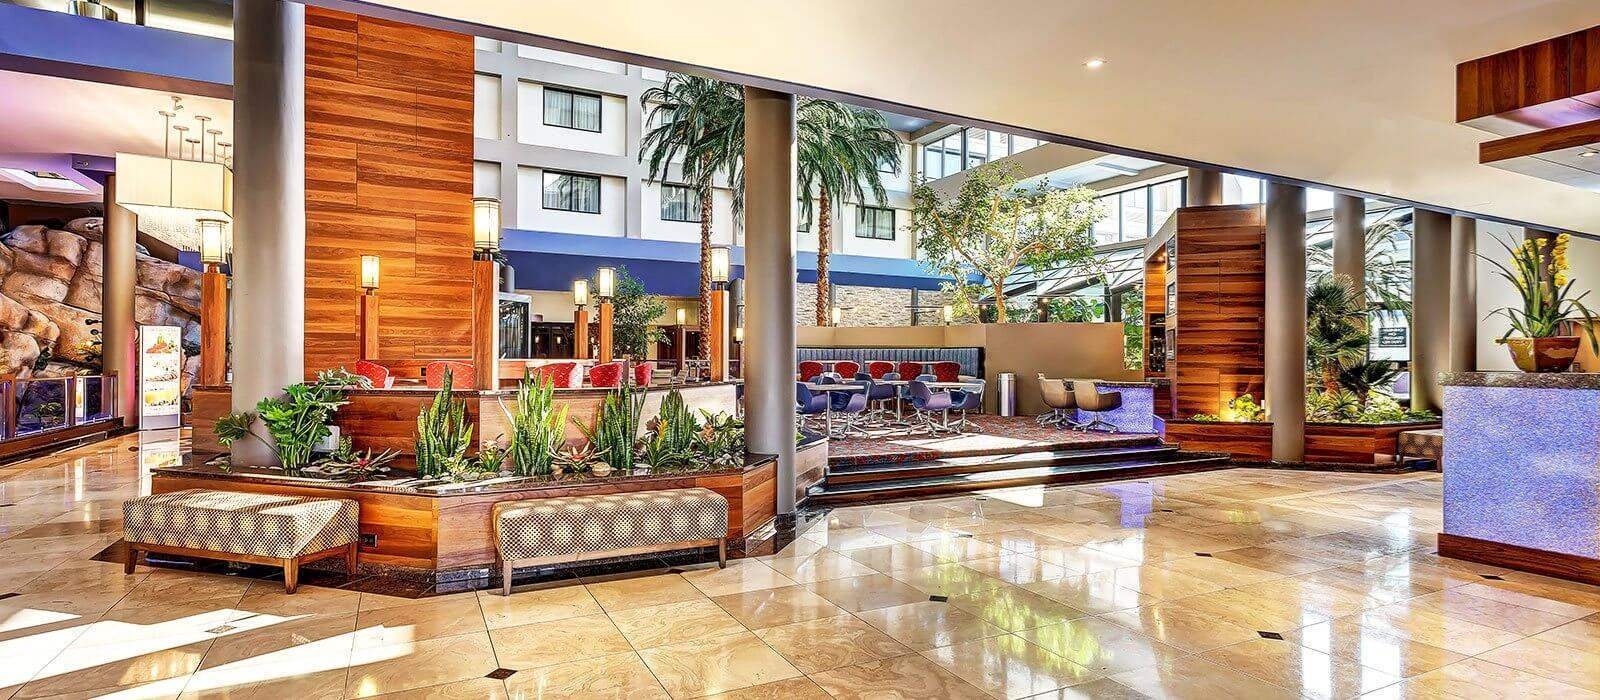 Crowne Plaza - Foster City Hotel, California